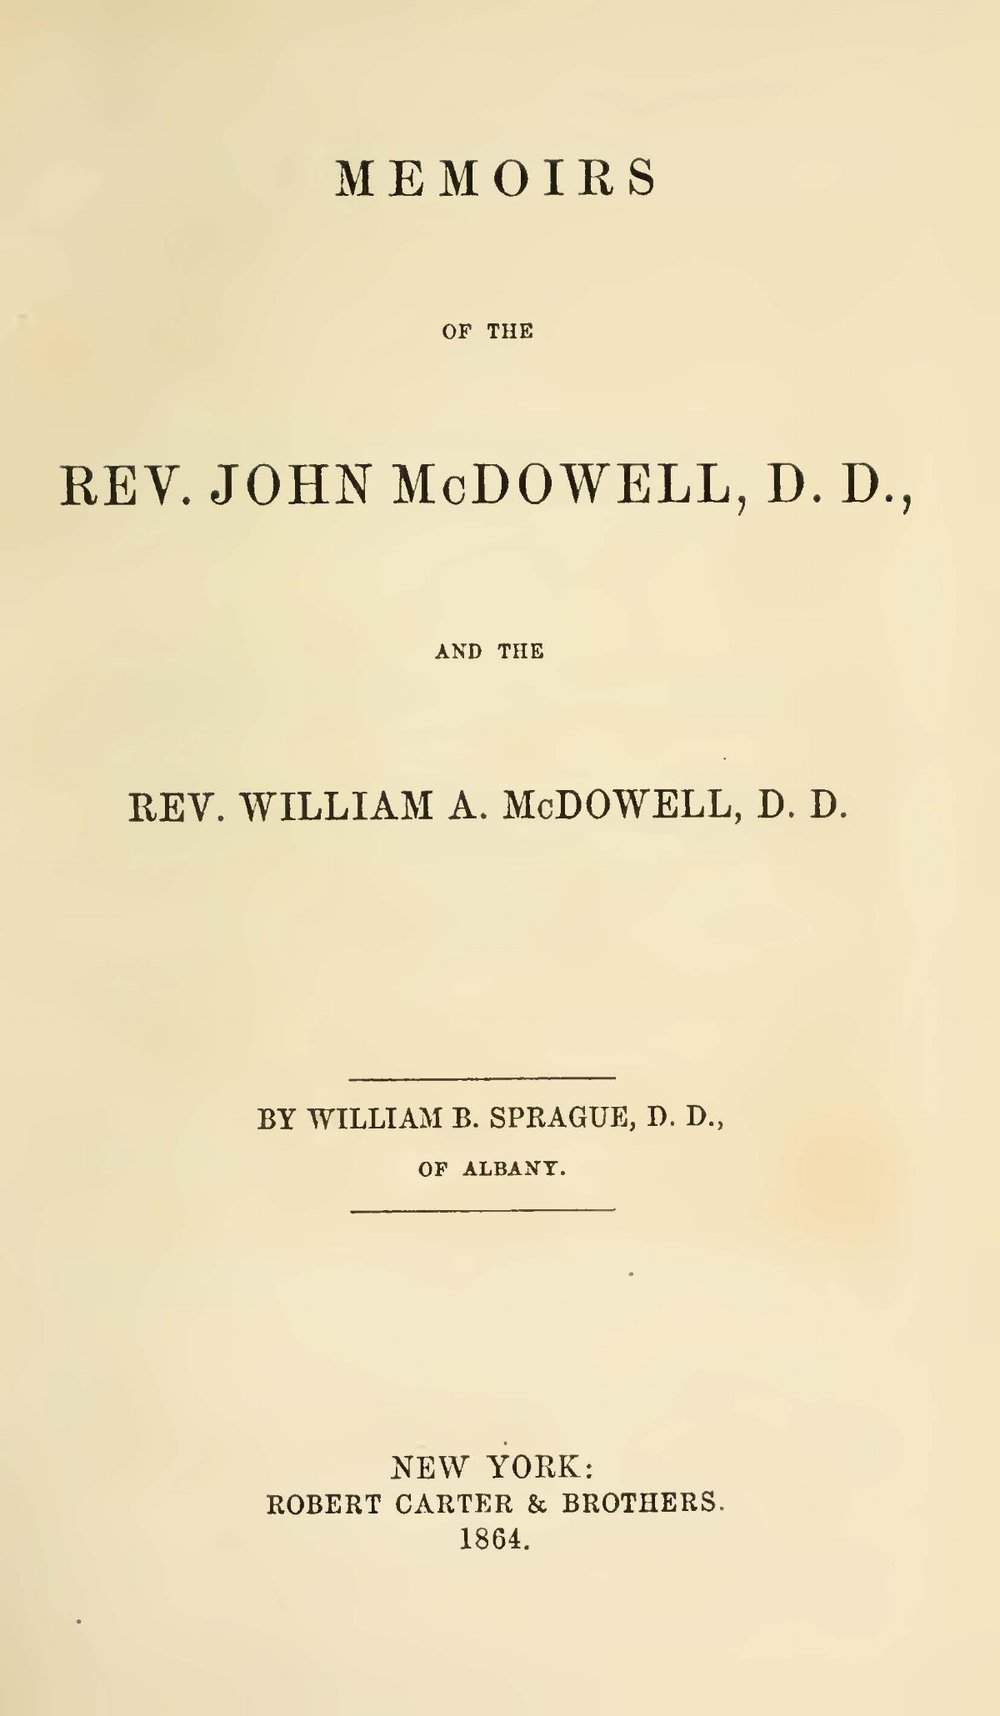 Sprague, William Buell, Memoirs of the Rev. John McDowell, D.D., and the Rev. William A. McDowell, D.D. Title Page.jpg